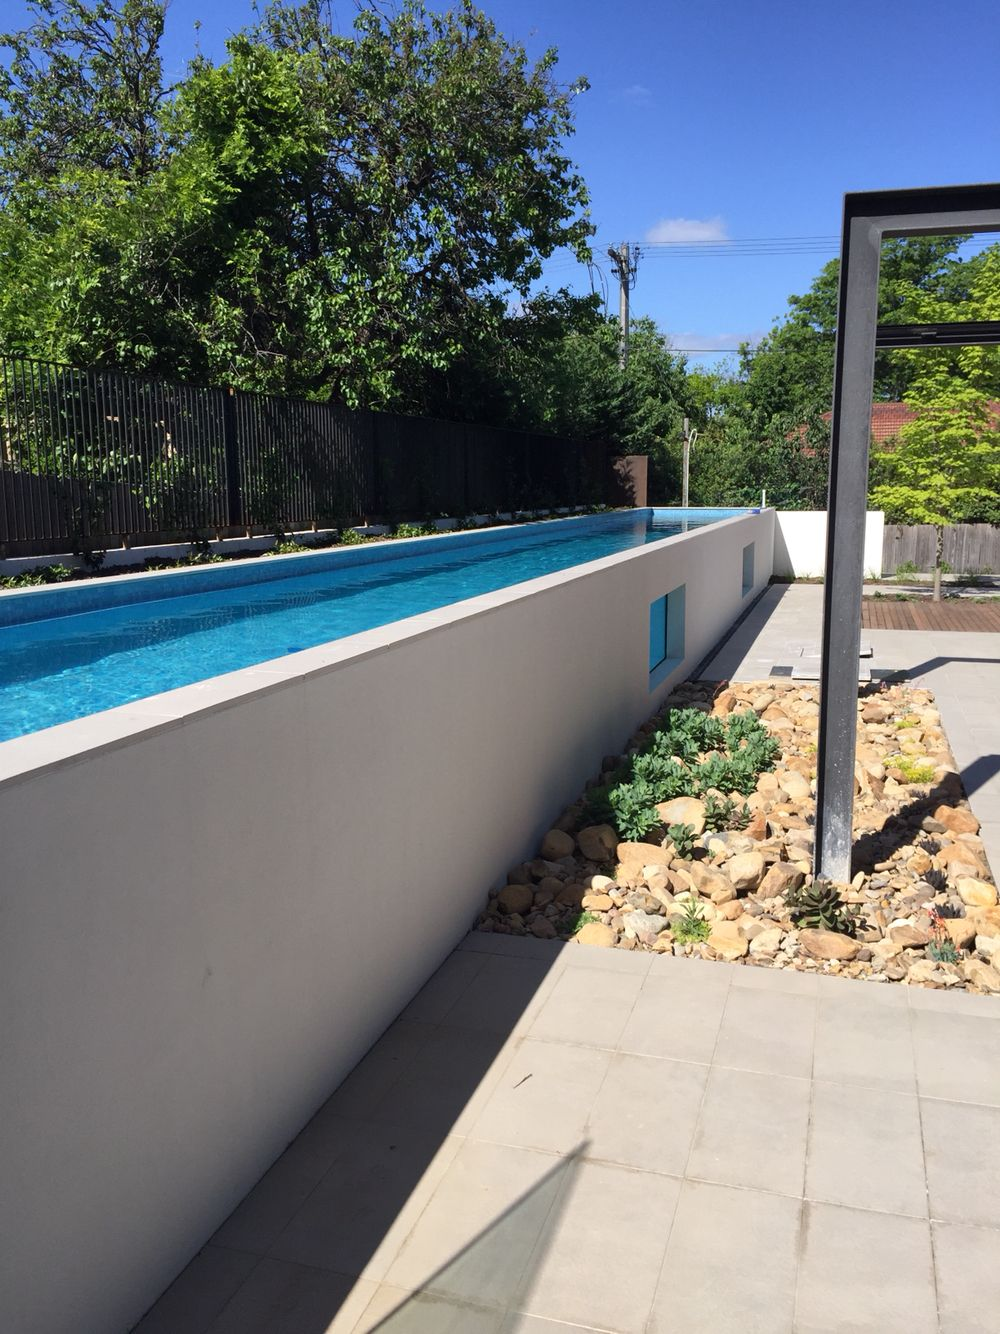 side of above ground lap pool - 1.2m height means you do not need